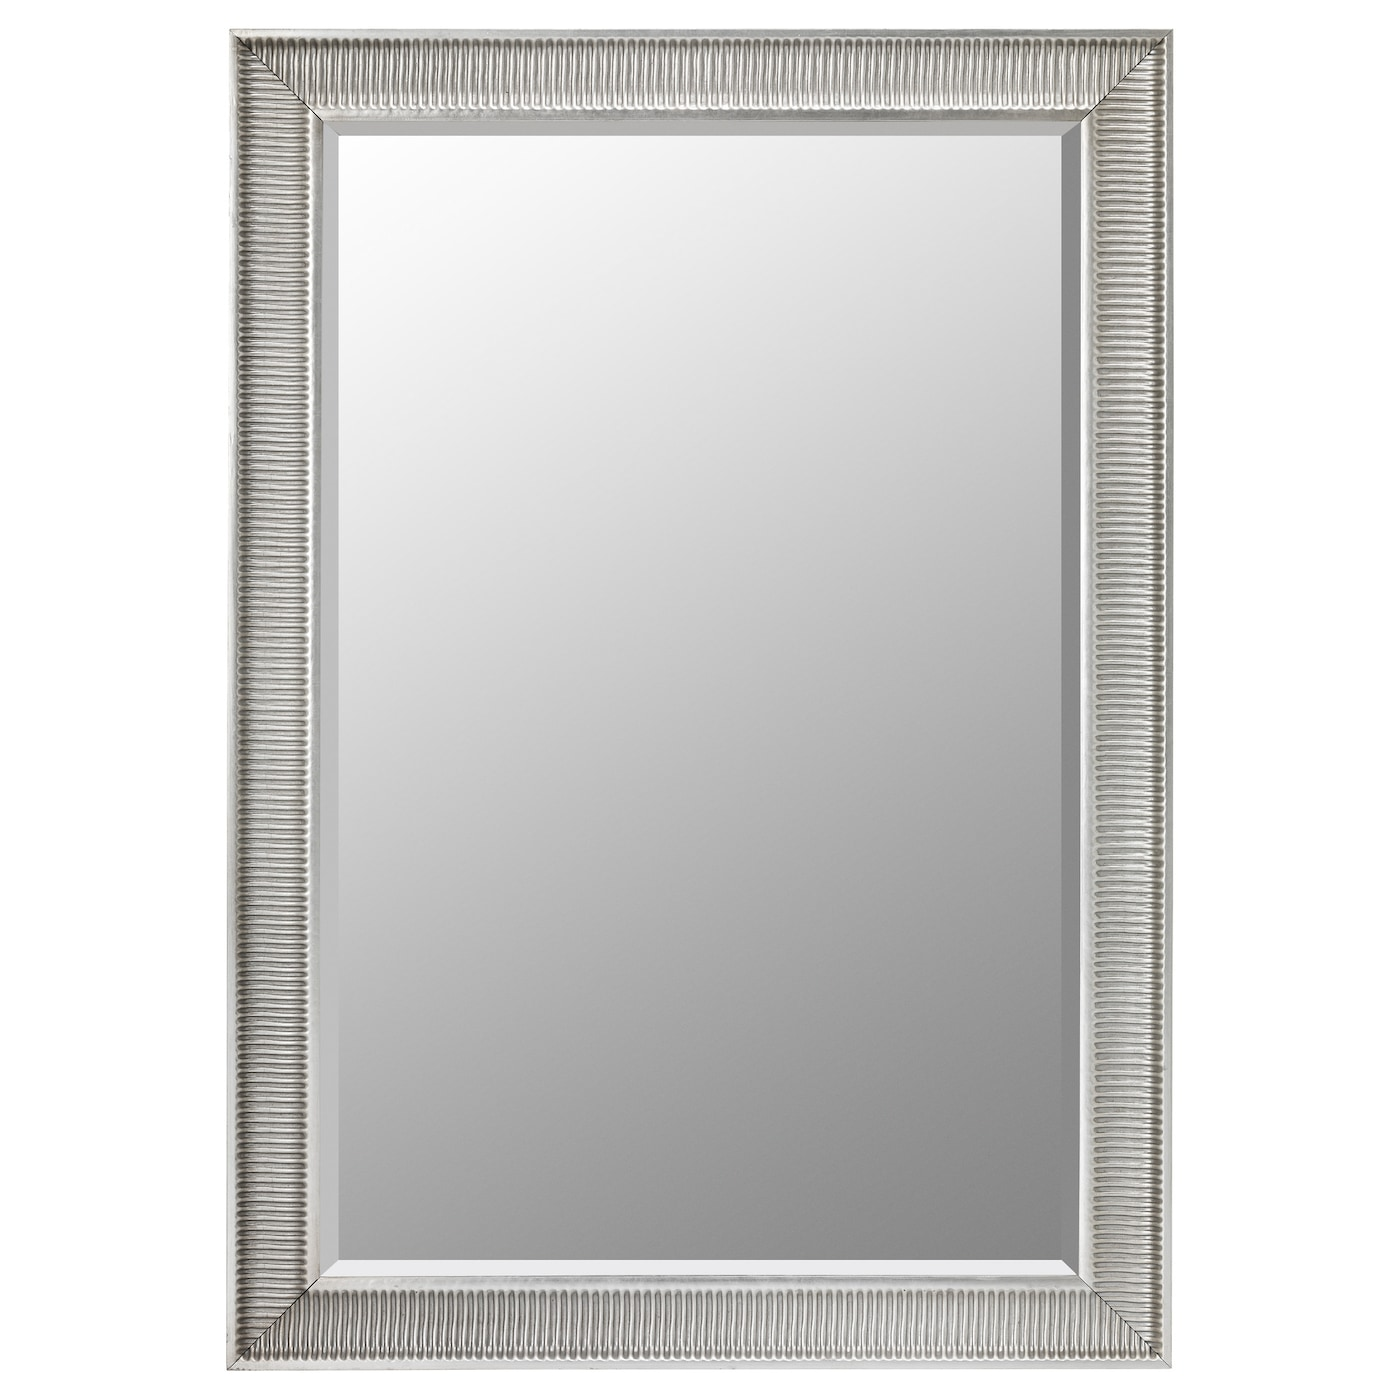 Songe mirror silver colour 91x130 cm ikea for Mirror video